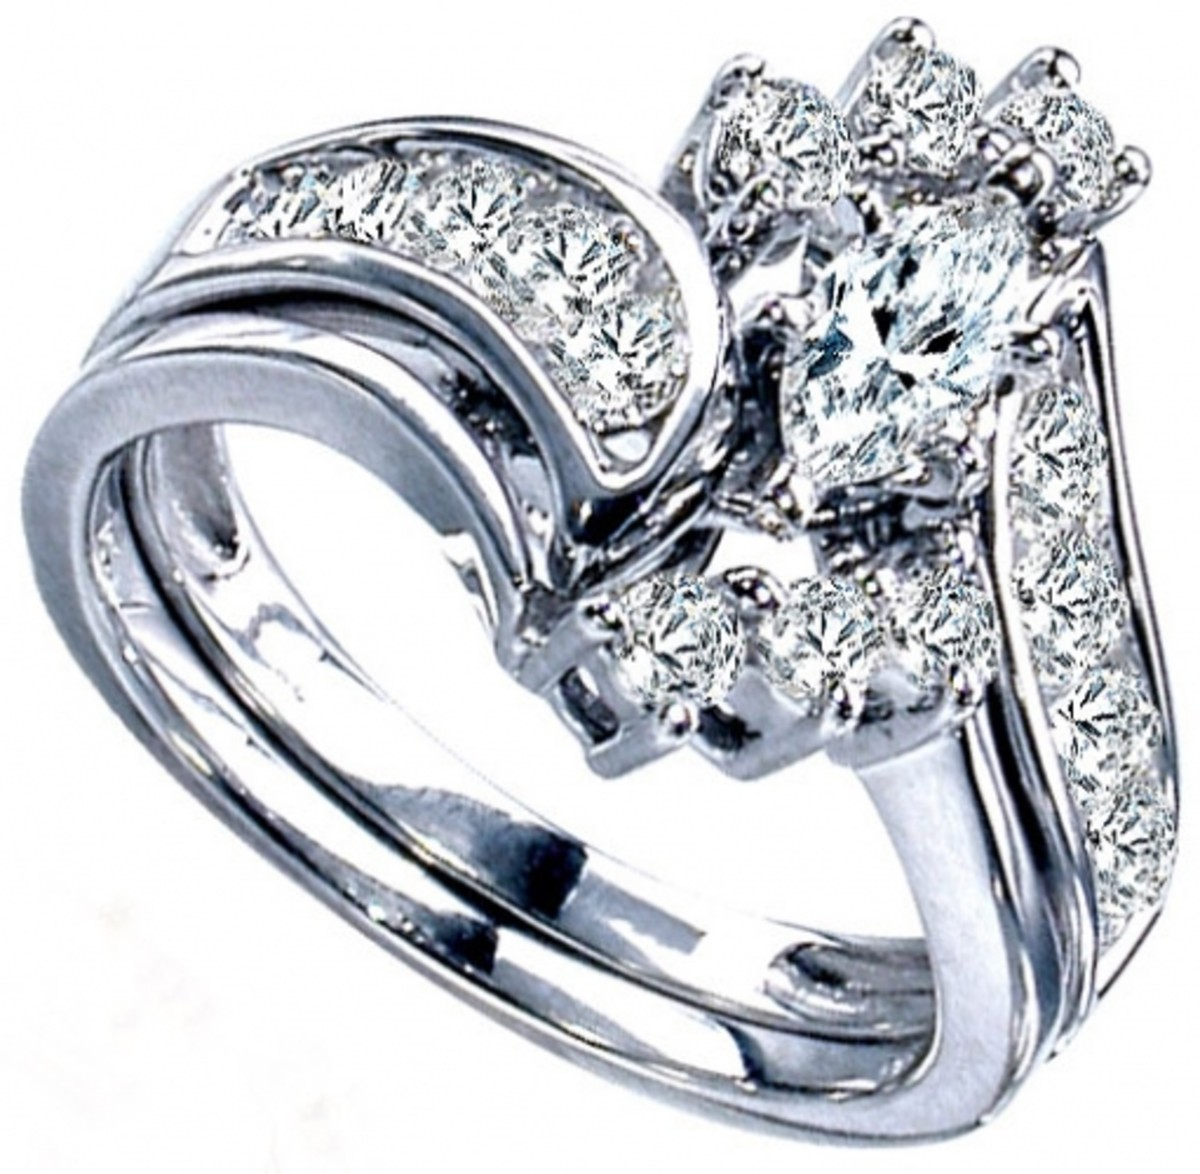 ...a fussy ring with many small diamonds is not a wise choice.